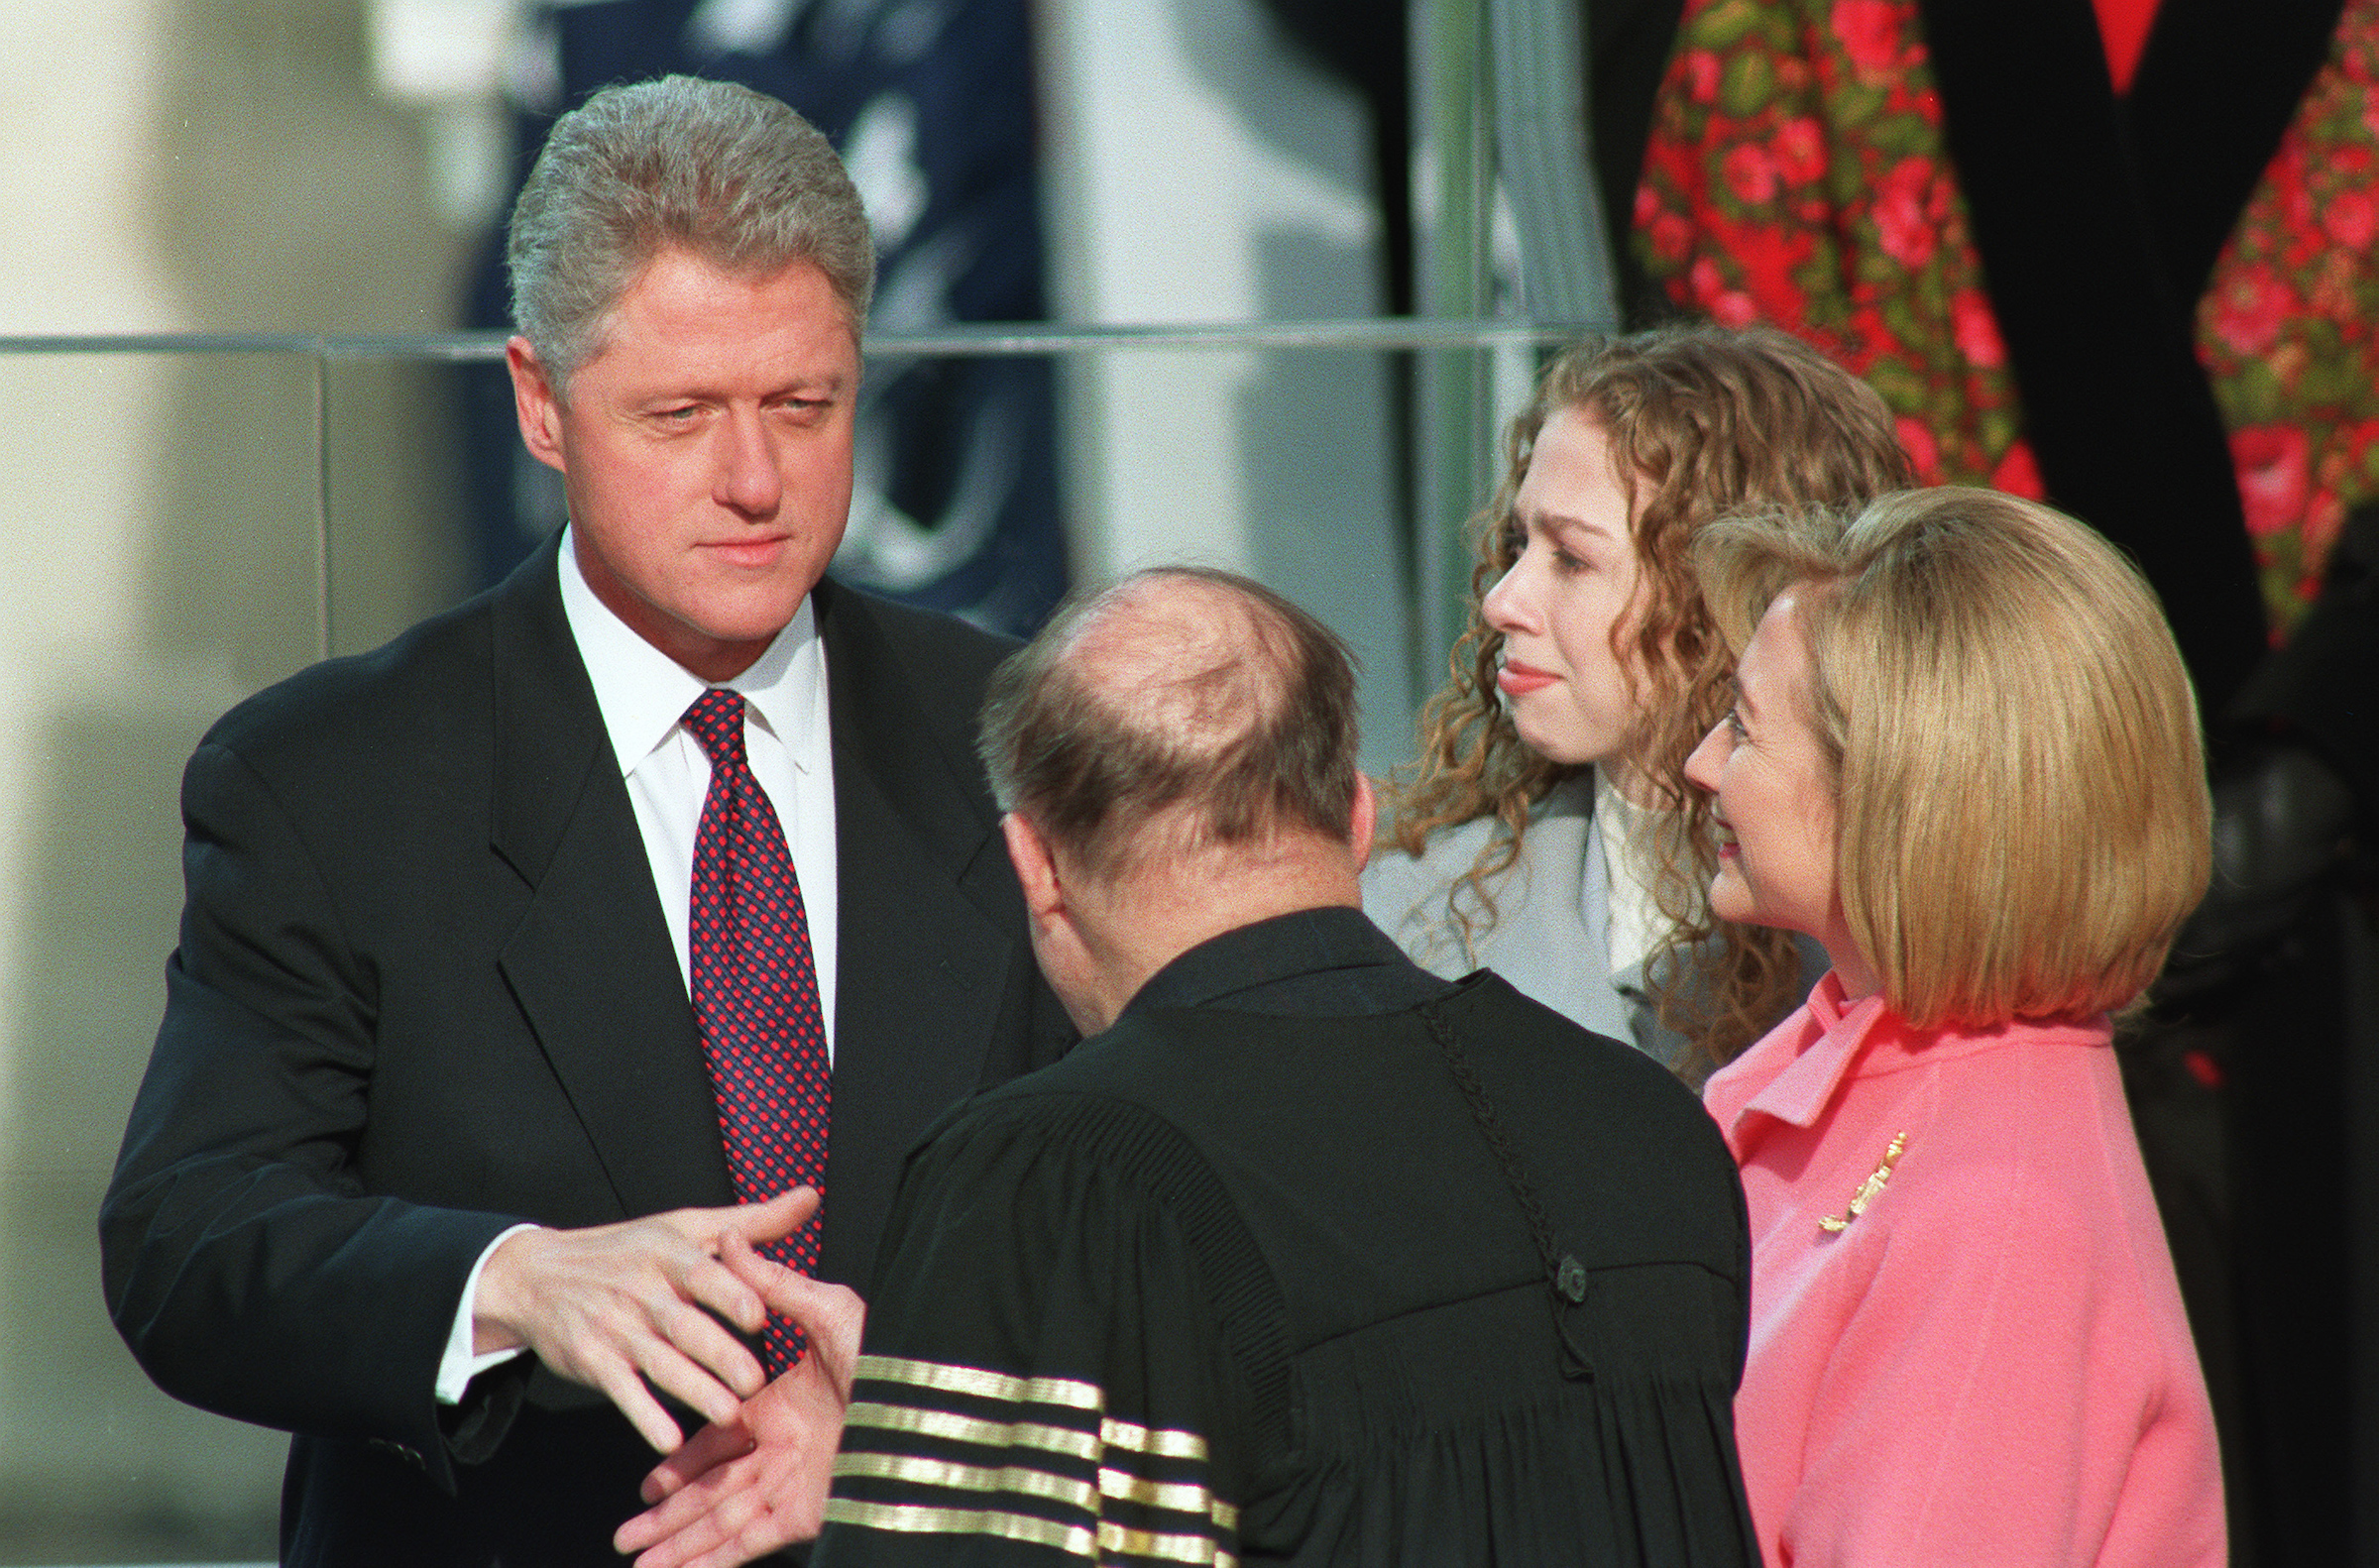 Clinton shakes Supreme Court Chief Justice William Rehnquist's hand after his swearing-in in 1997. (Scott J. Ferrell/CQ Roll Call file photo)